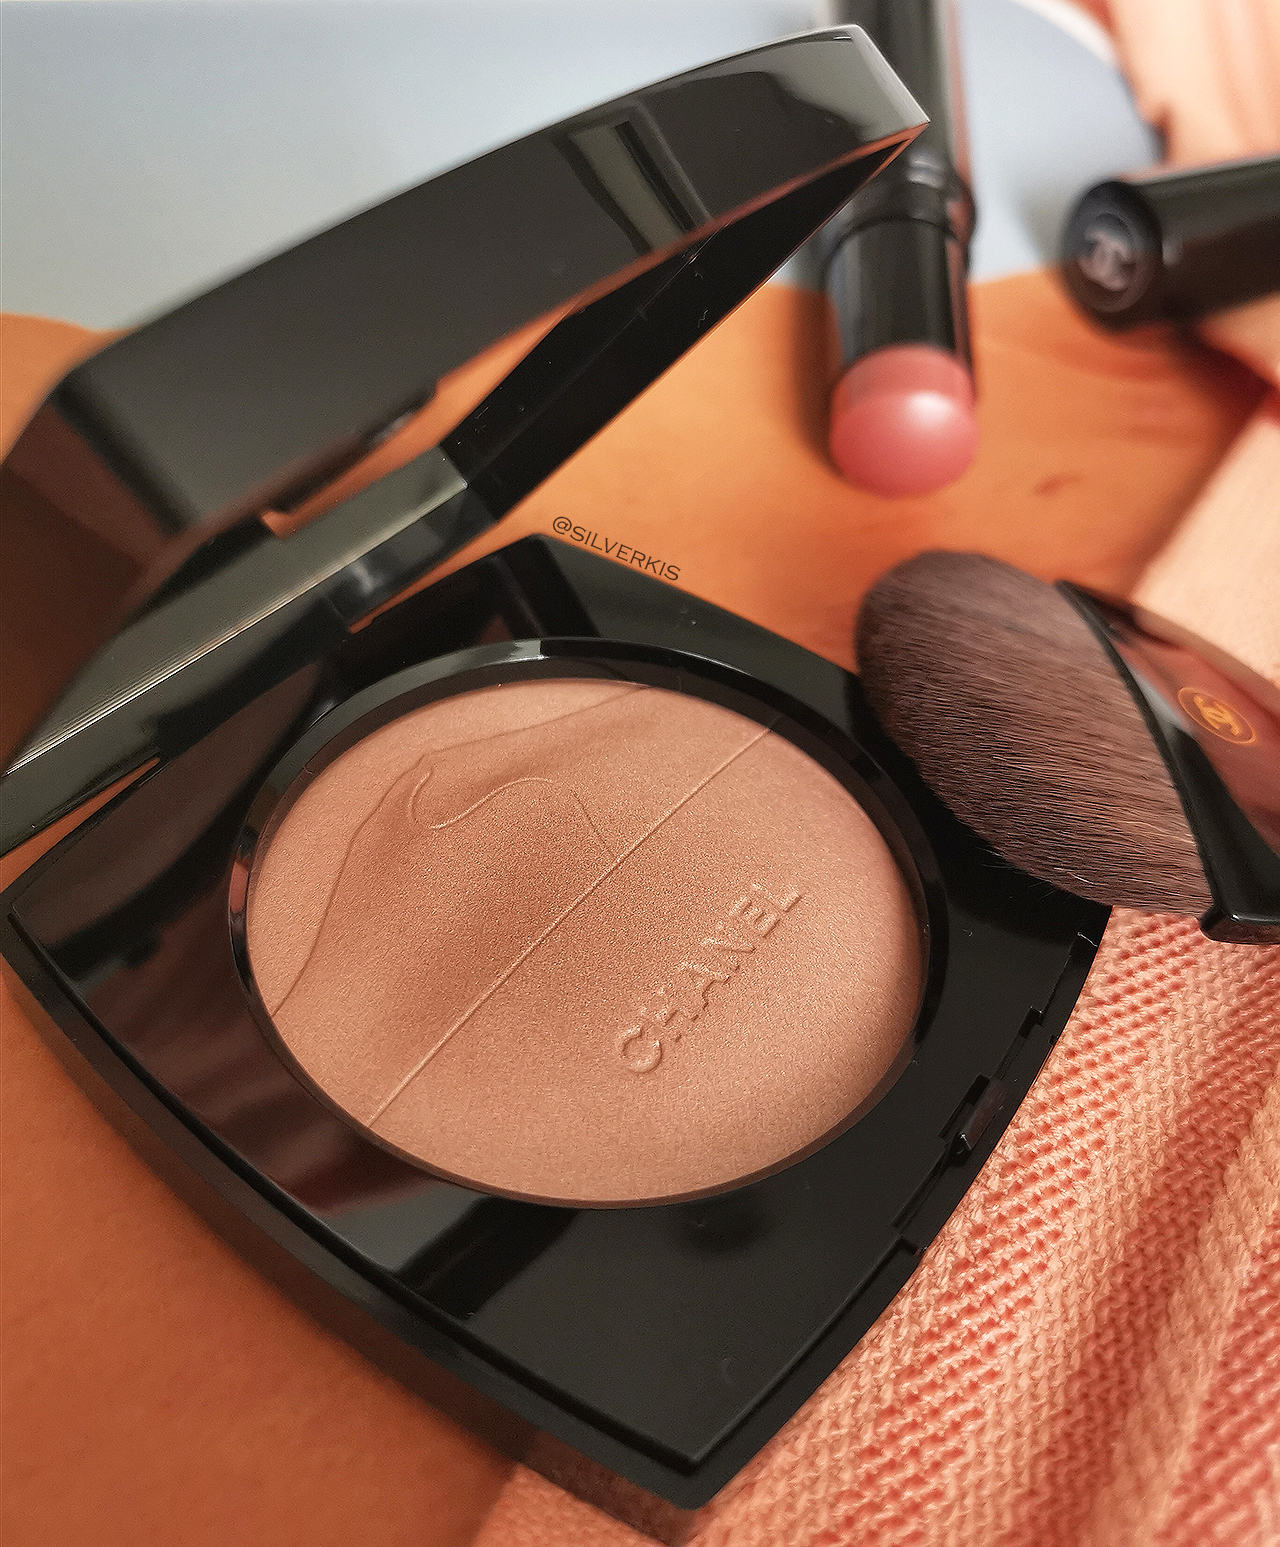 Chanel Eclat du Desert Illuminating Powder & Golden Light Baume Essentiel